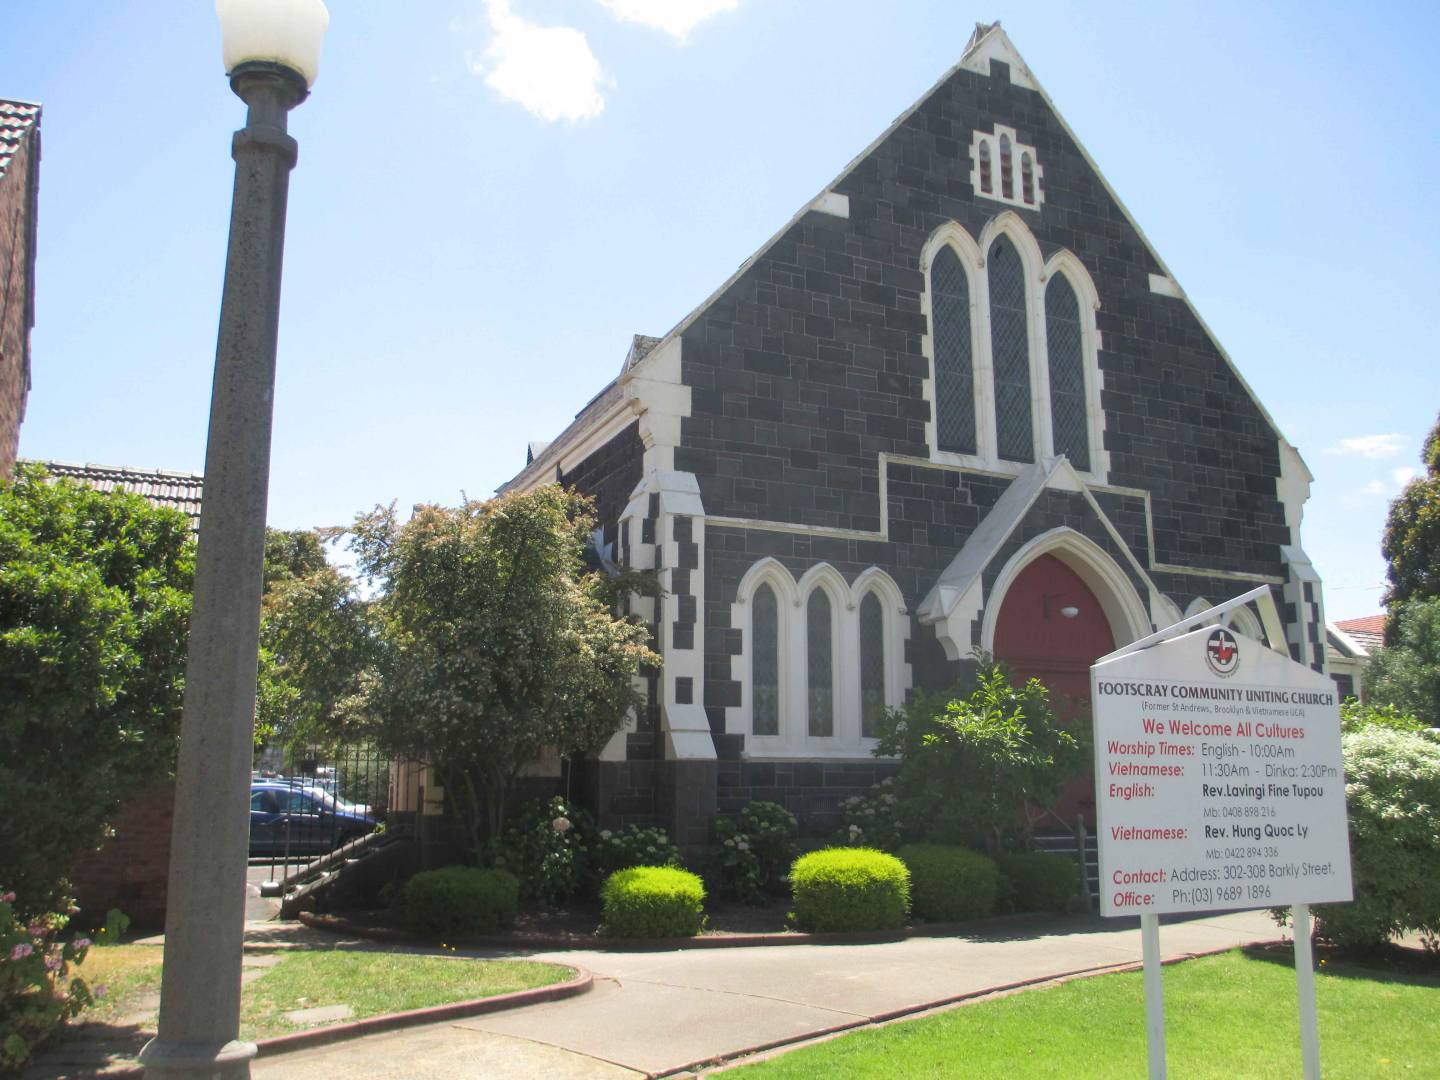 Footscray Community Uniting Church